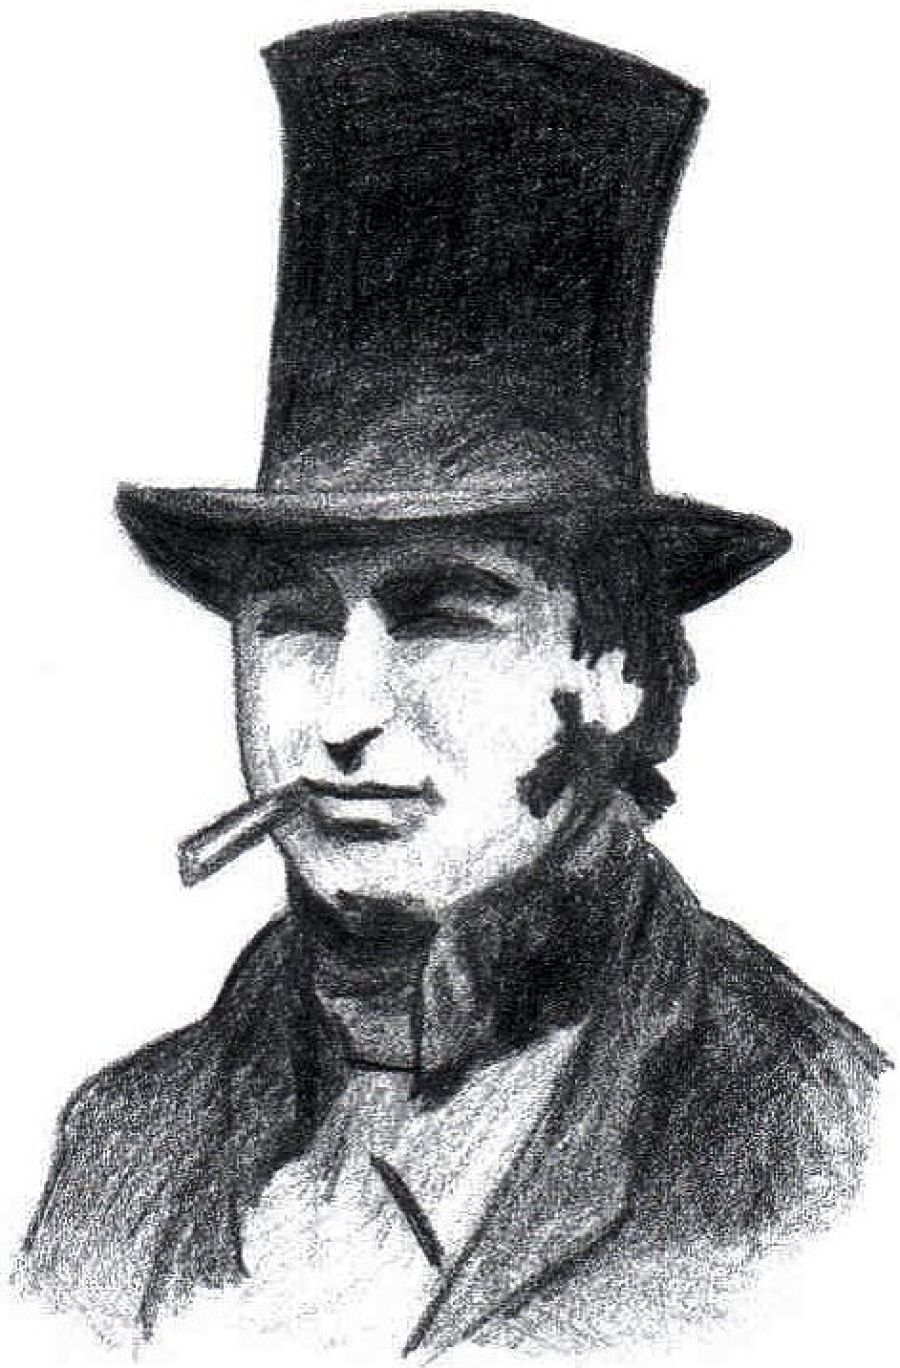 isambard kingdom brunel Isambard kingdom brunel, (9 april 1806 15 september 1859), was an english engineer he is best known for the creation of the great western railway, a.